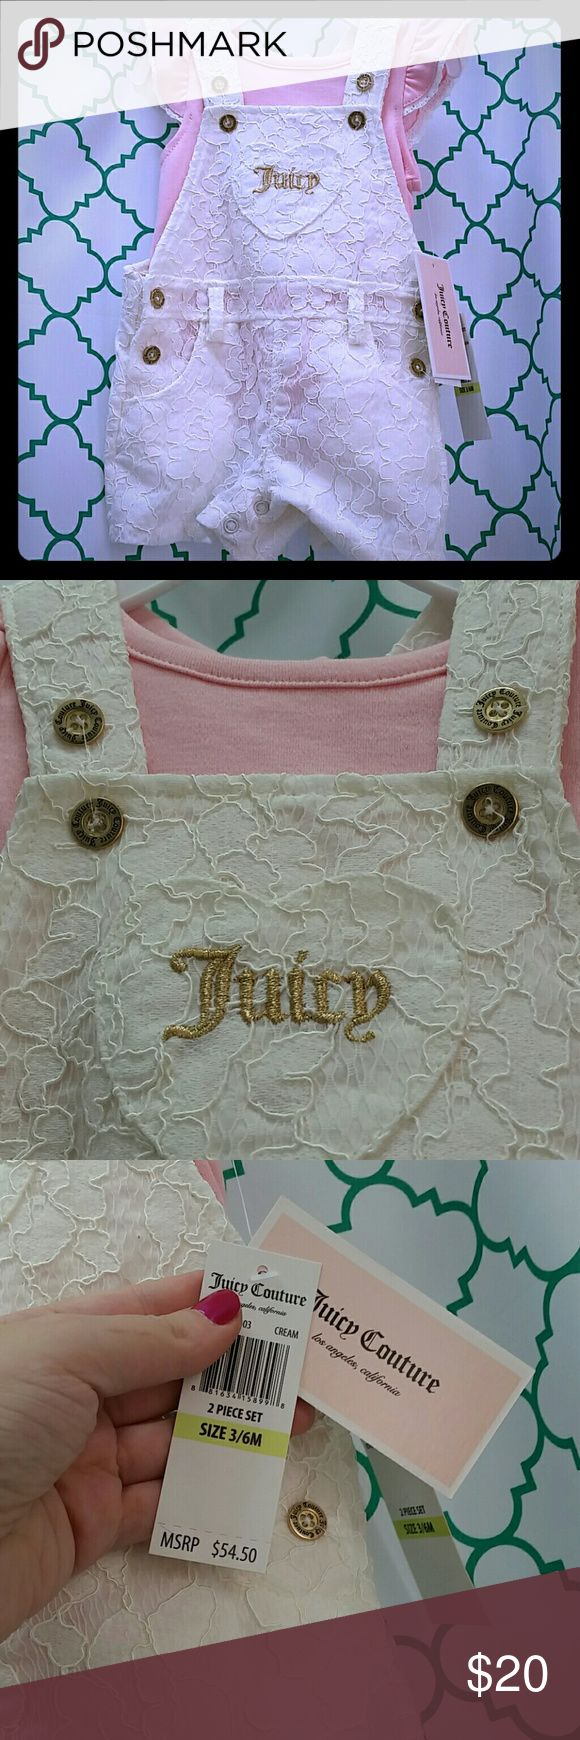 End of summer clearance Juicy Couture Infant Set Brand new with tags never been worn white lace overall shorts with pink t-shirt.  Size 3-6 months. Gold stitching and gold juicy Couture logo buttons. Juicy Couture Bottoms Casual